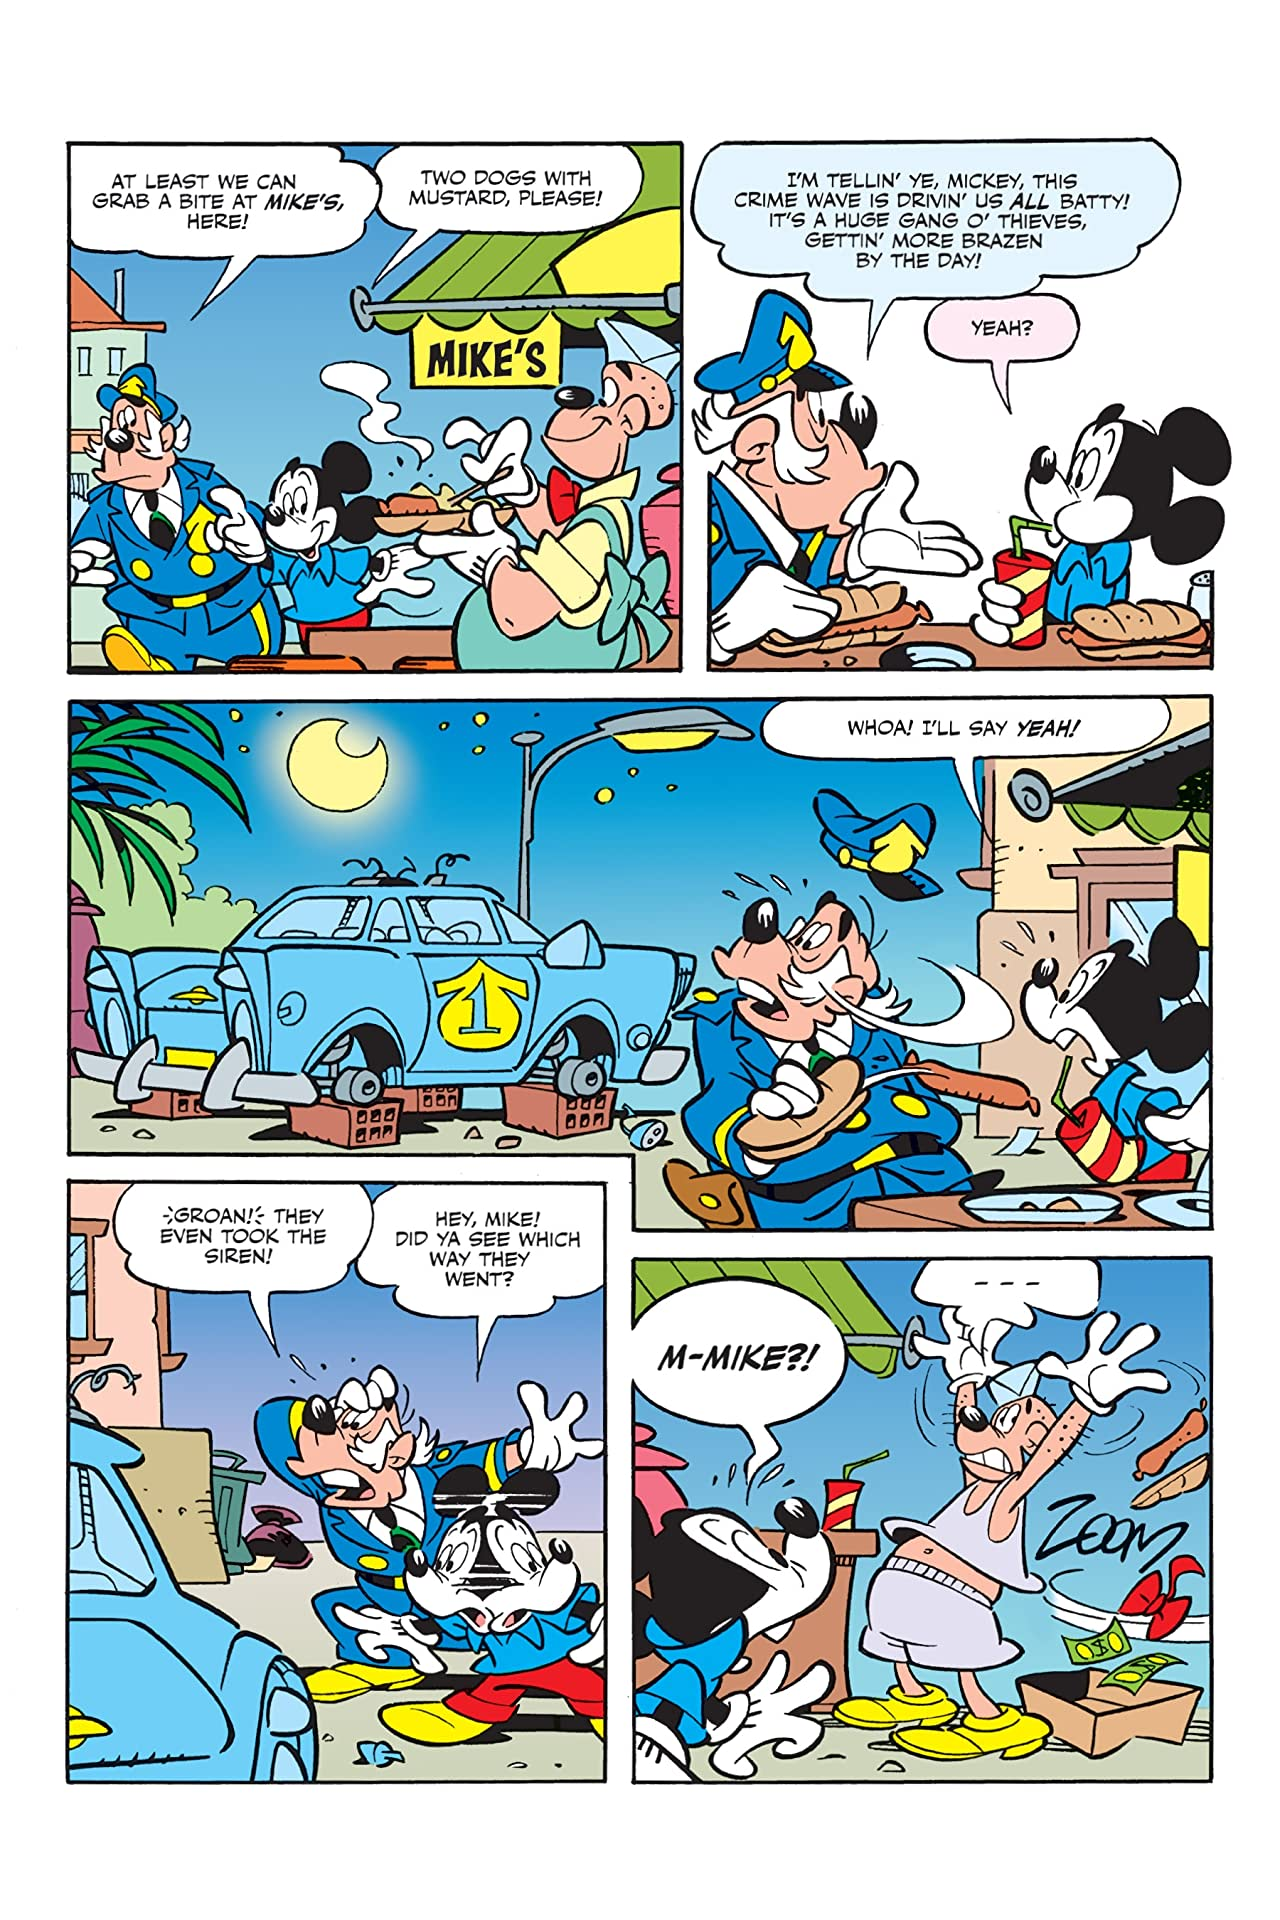 Mickey Mouse Vol. 7: The Magnificent Doublejoke